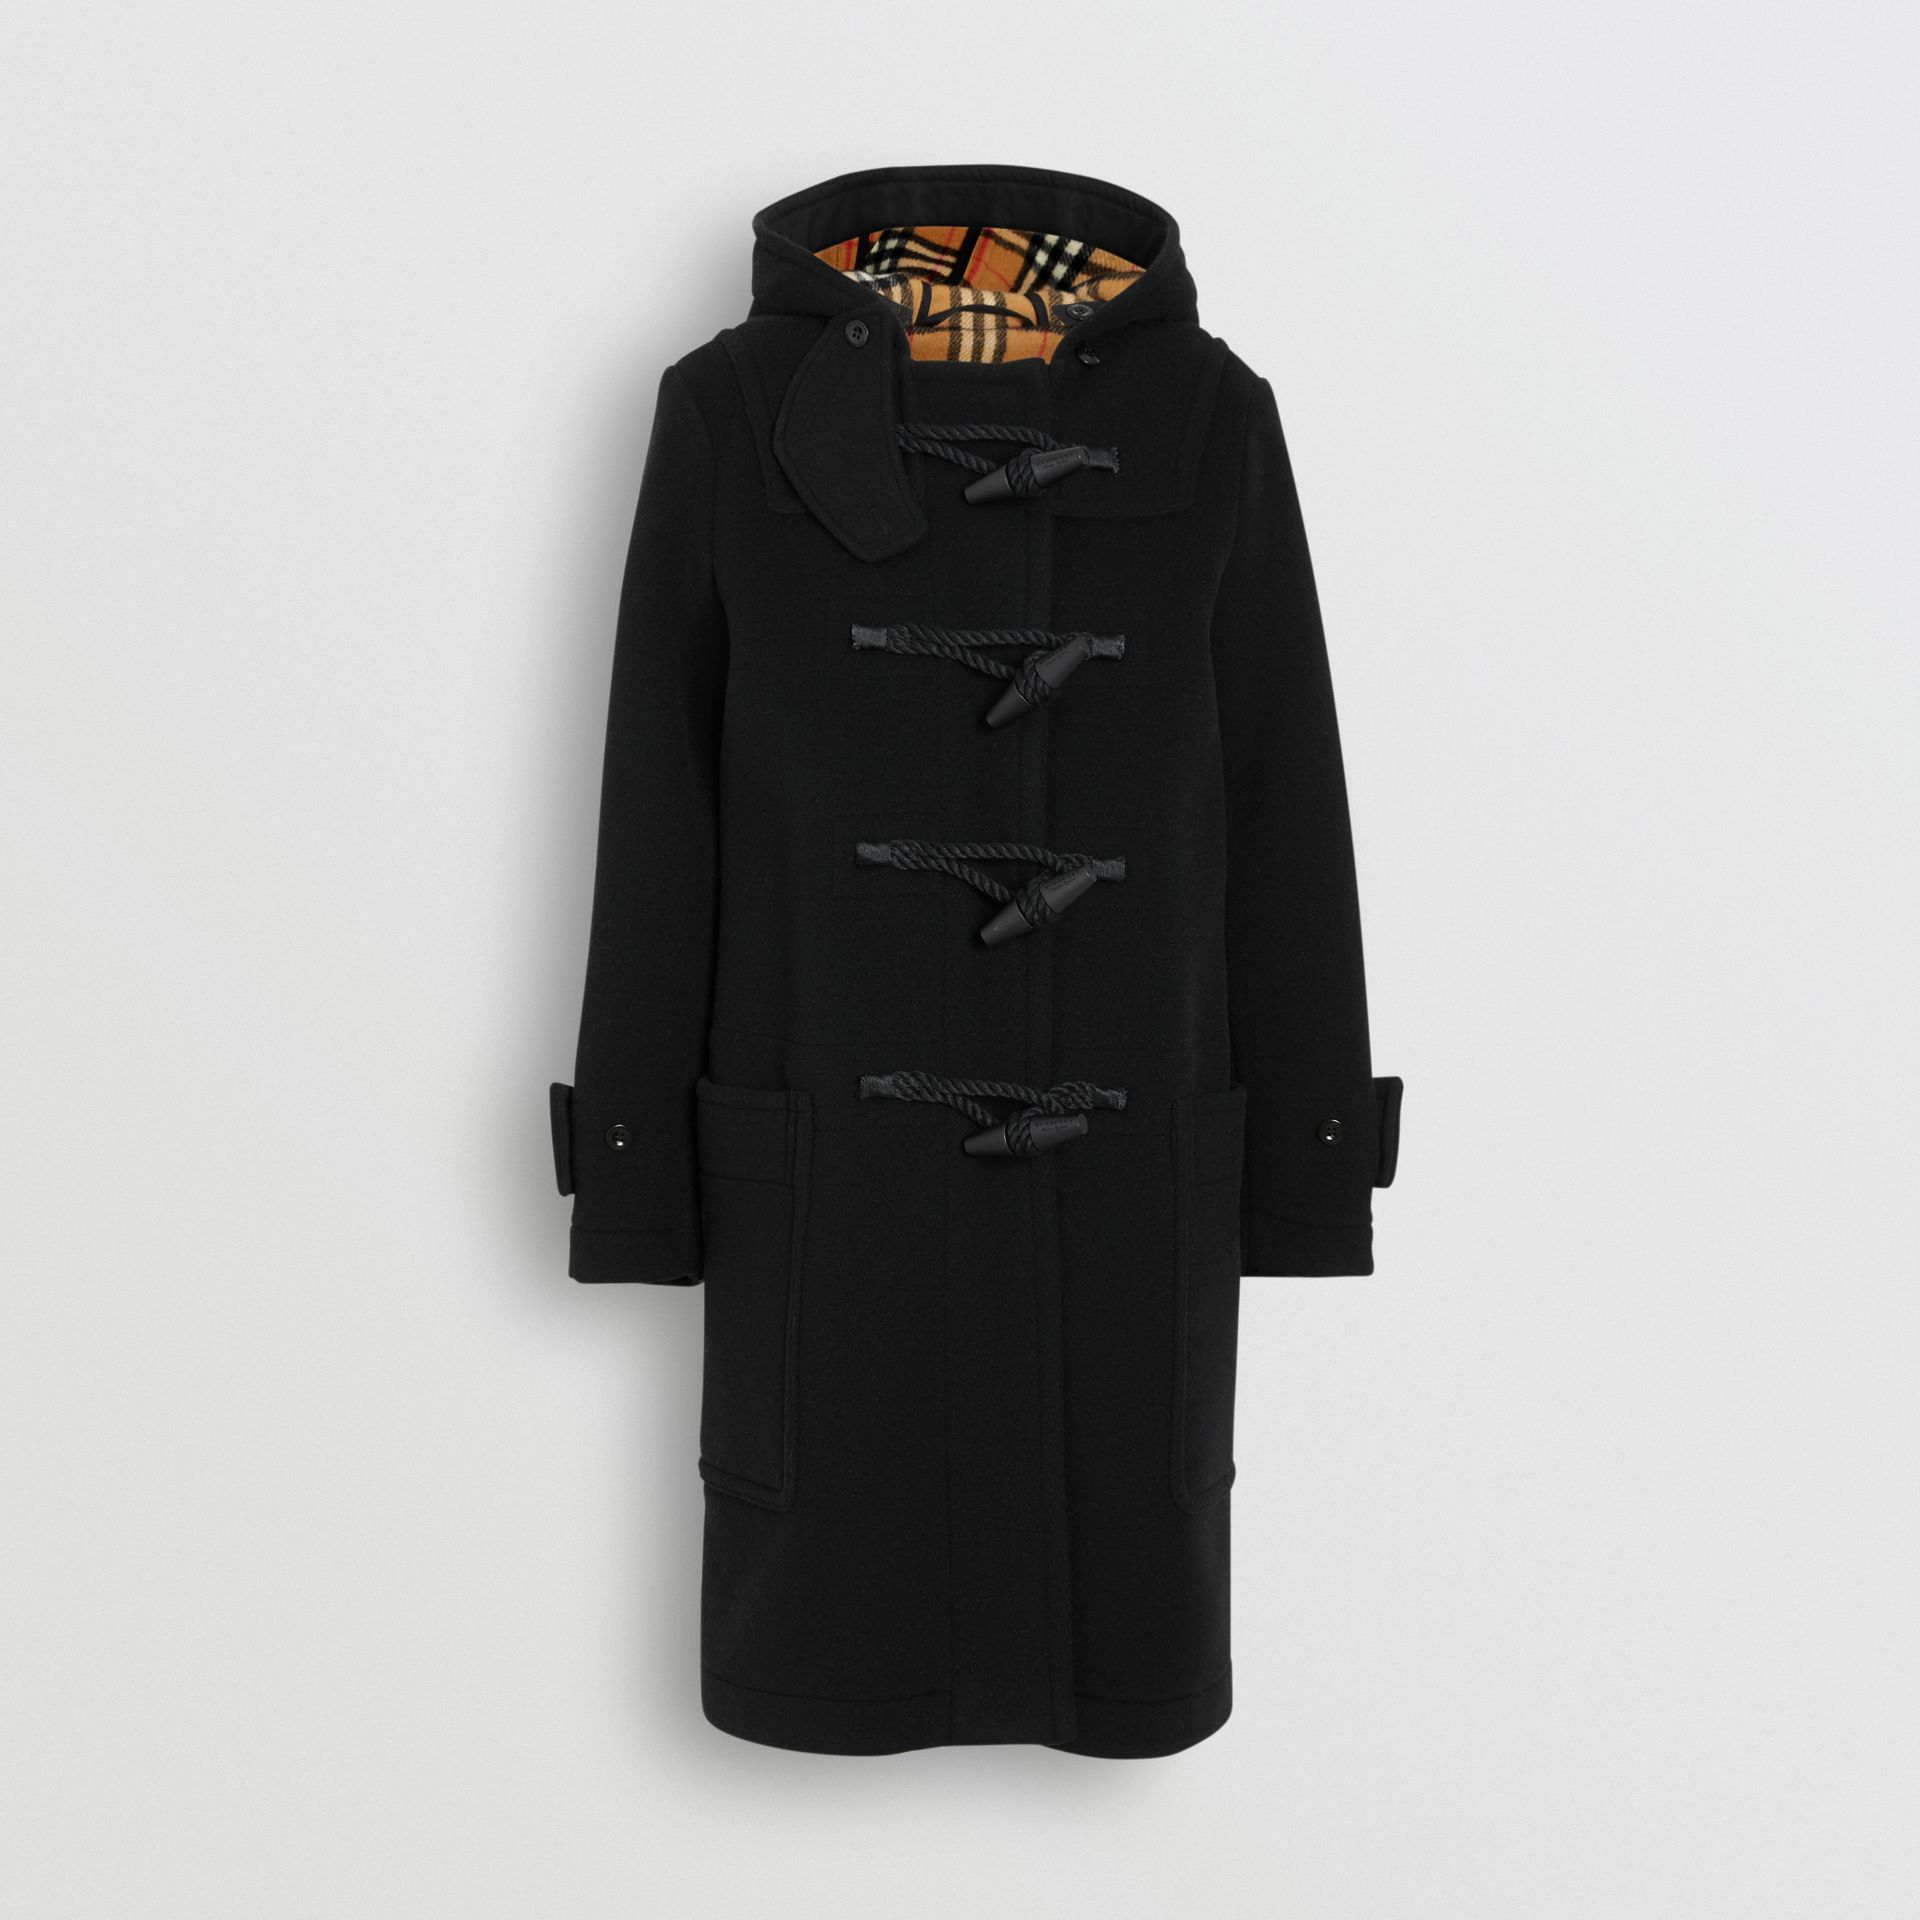 Wool Blend Duffle Coat in Black - Women | Burberry Australia - gallery image 4